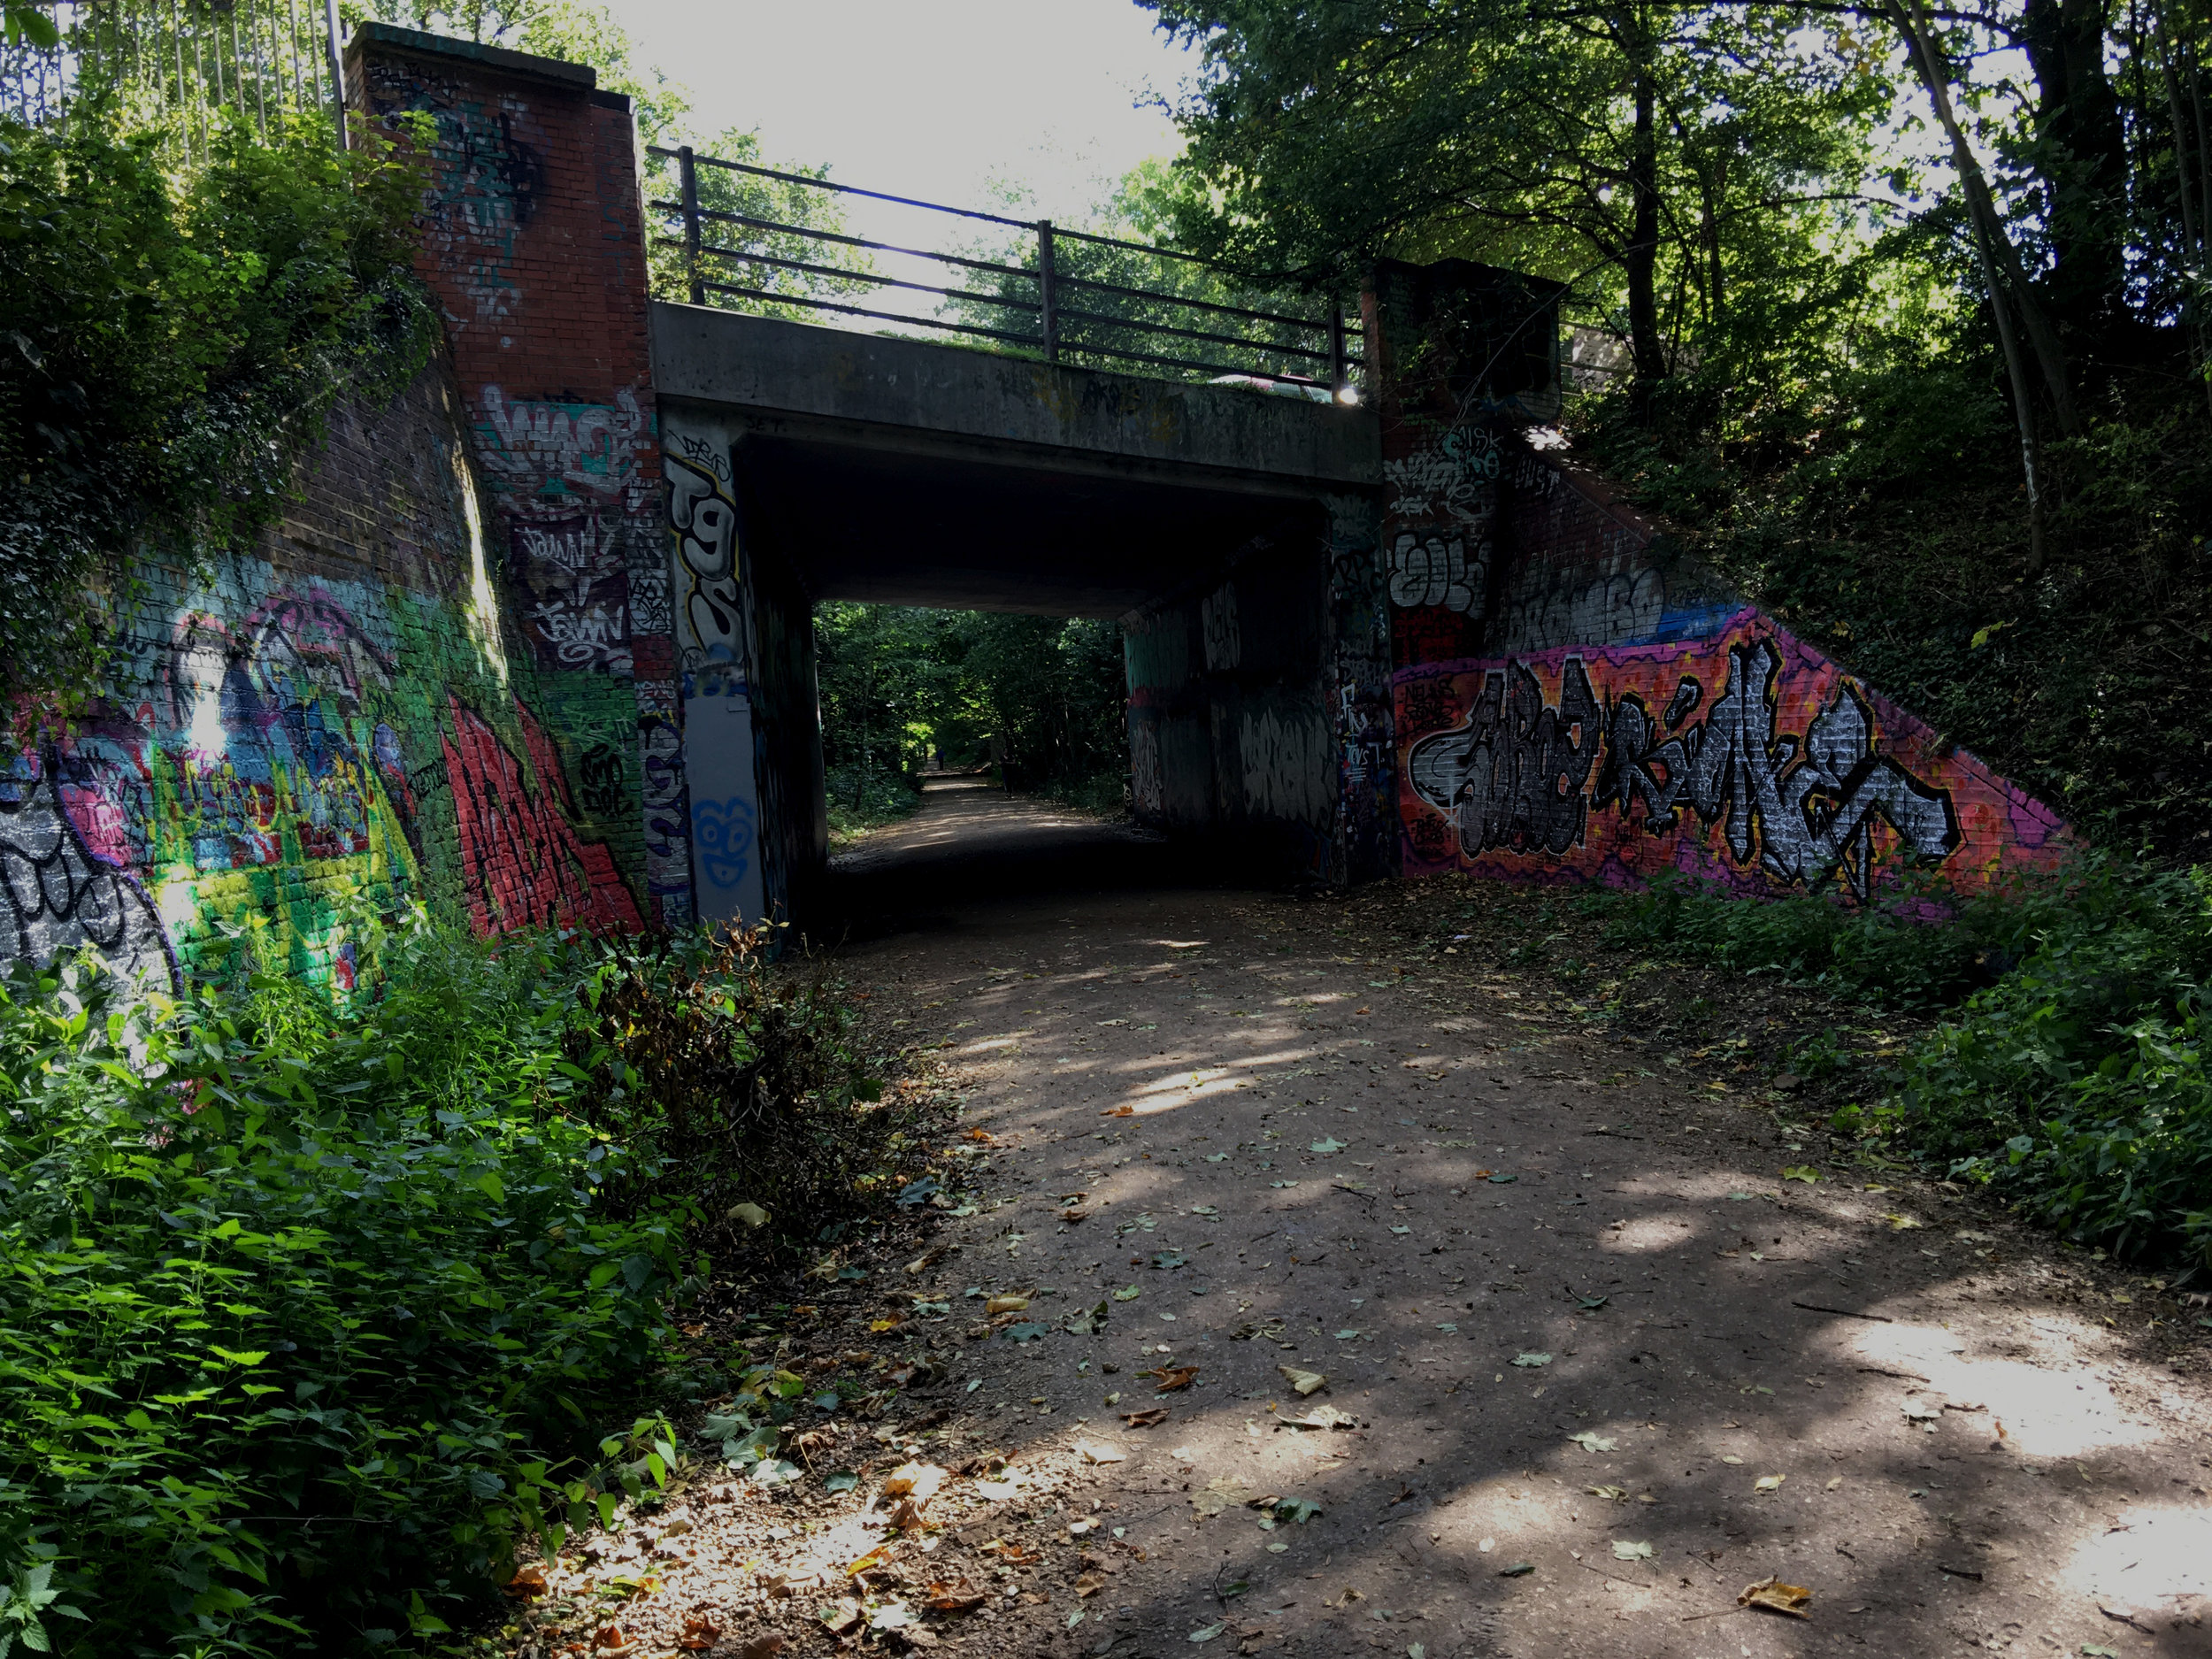 Much of the Parkland Walk's disused rail infrastructure is now covered in graffiti, although most of it is quite good.